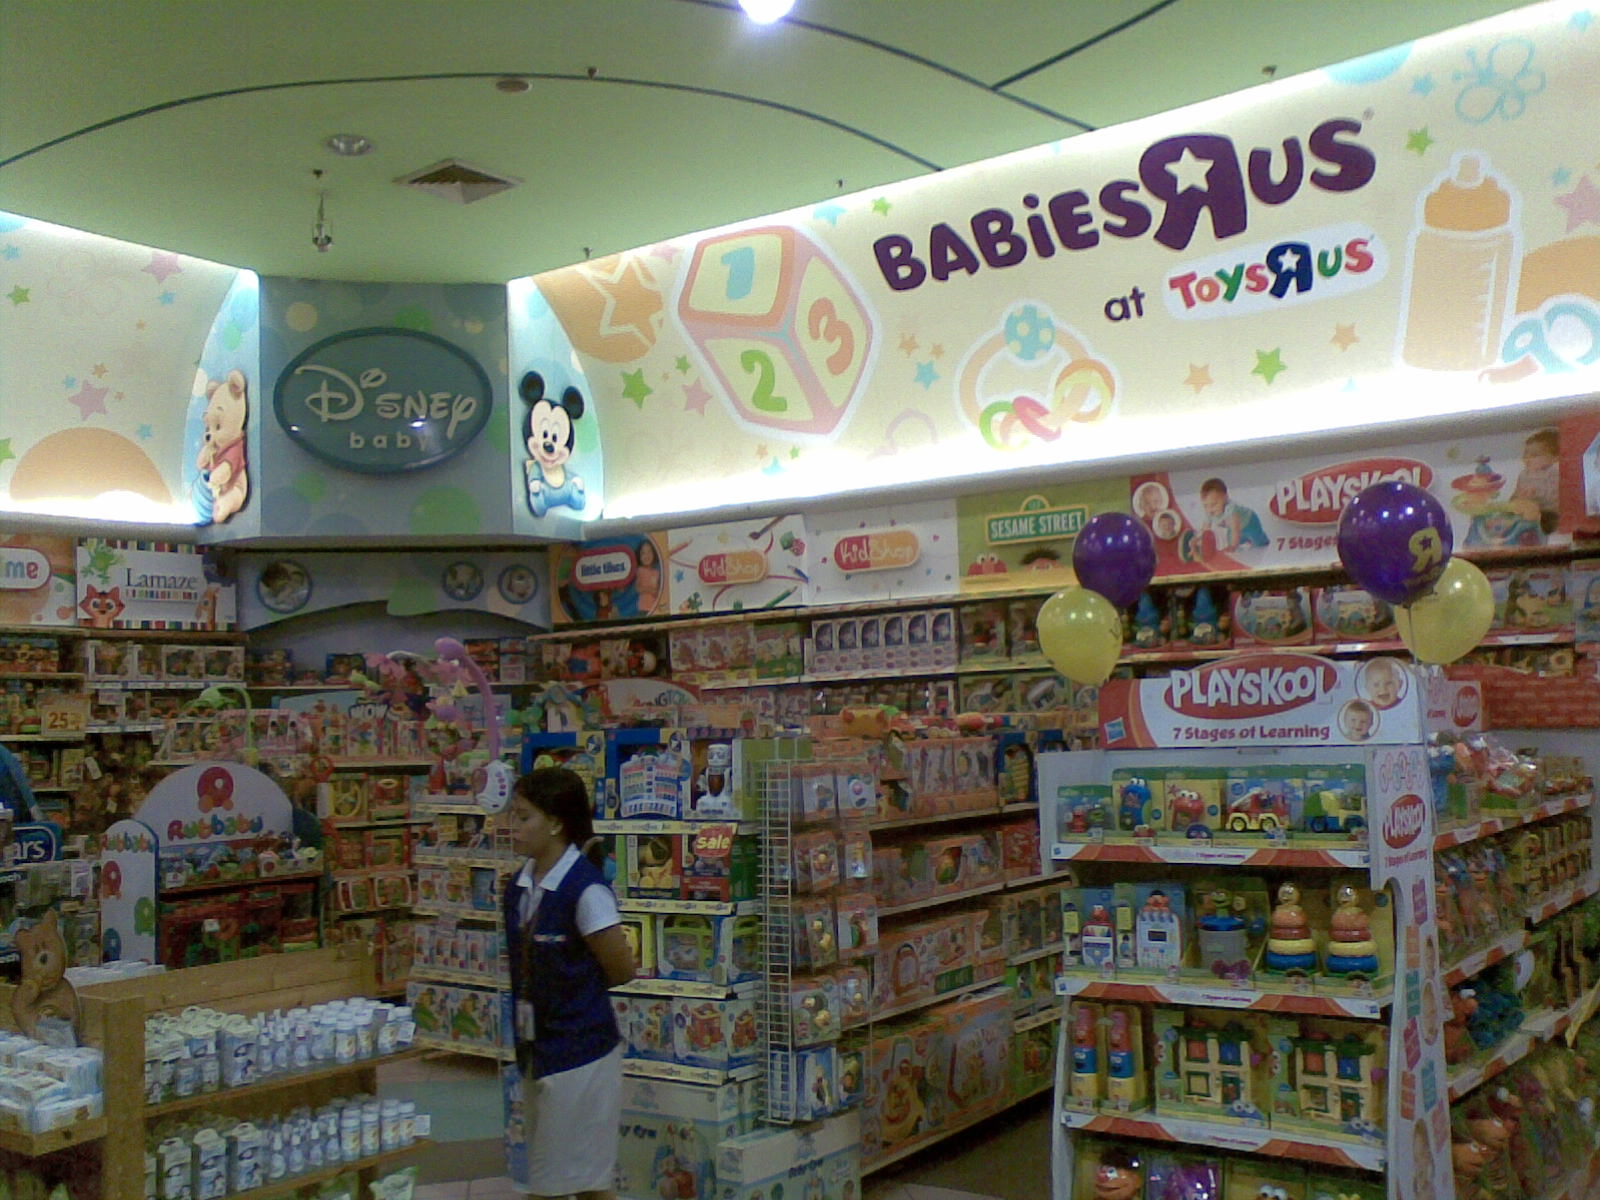 Toys R Us Babies R Us : Luckyfinds revisiting toys r us